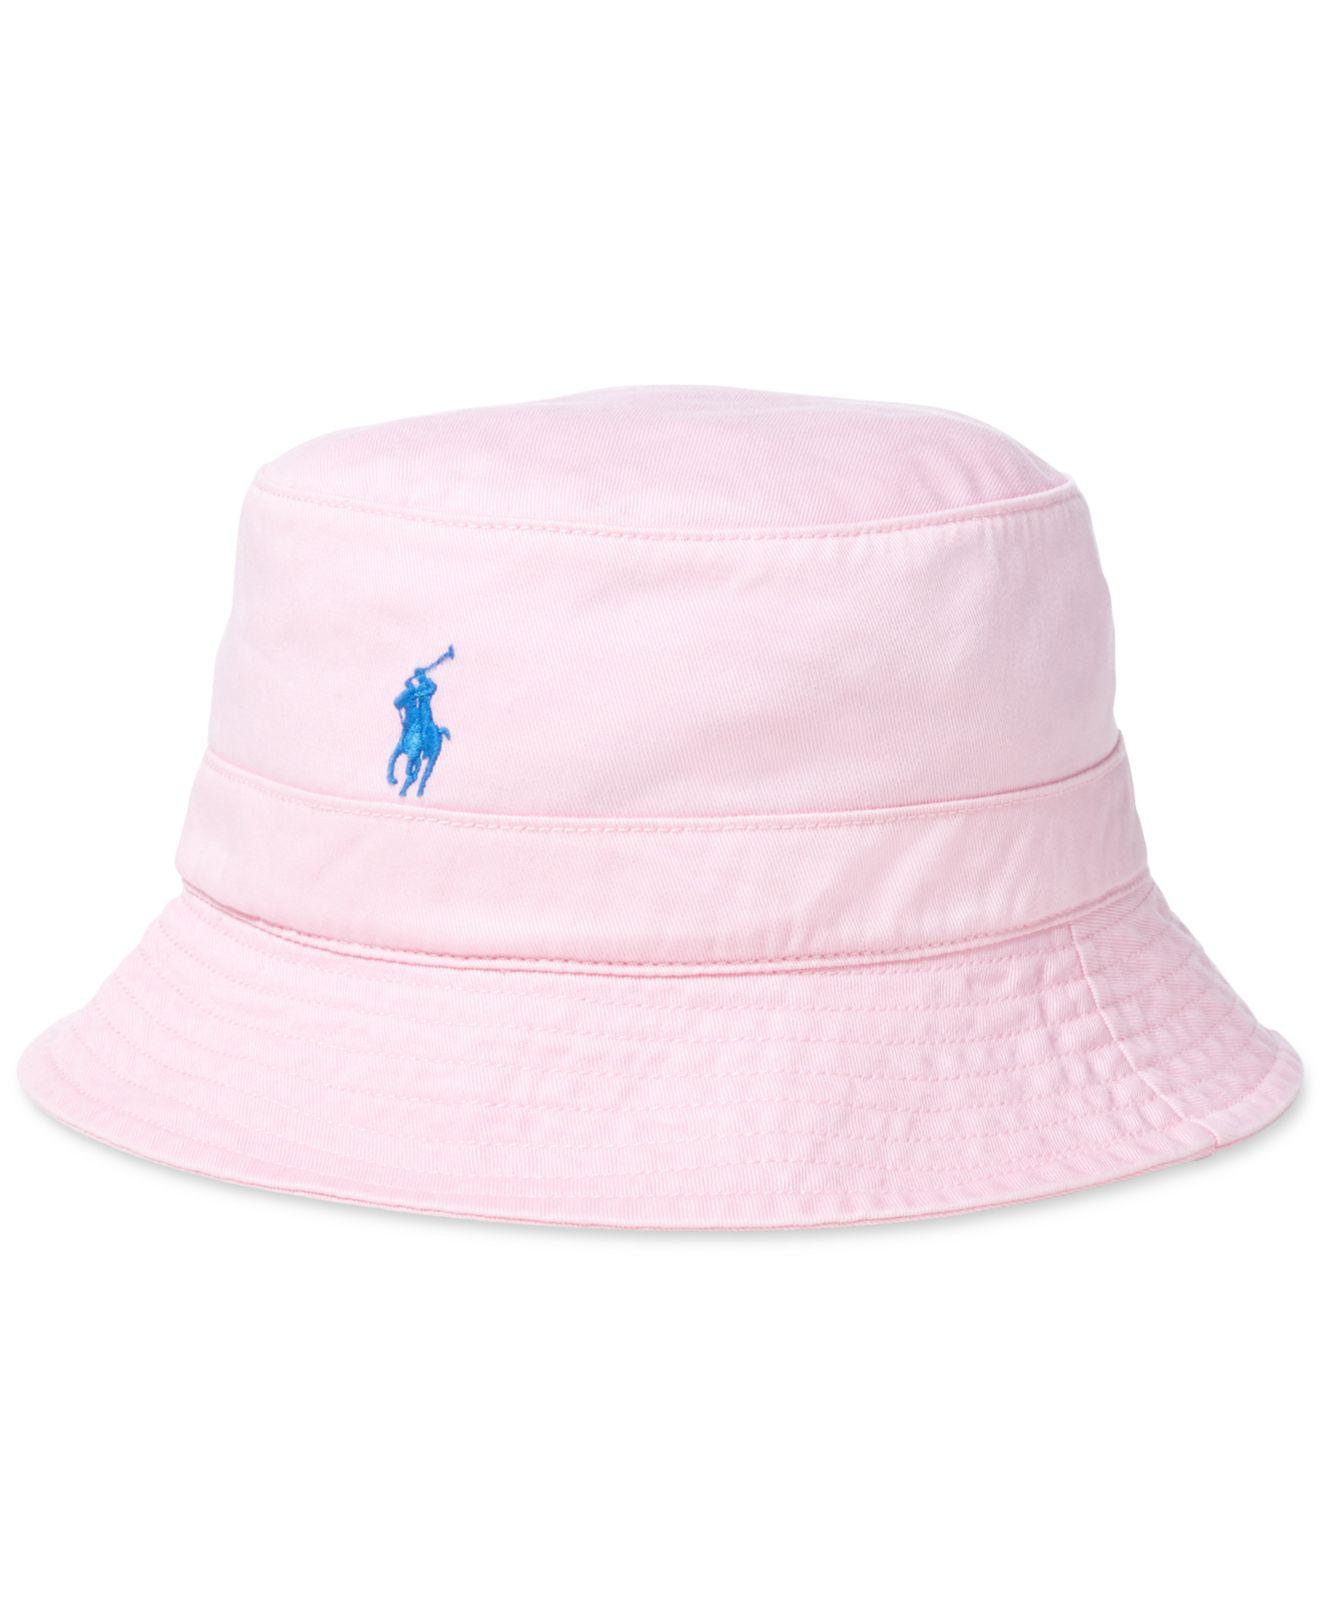 Medium polo ralph lauren bucket Hat Cotton Beach Pink Small